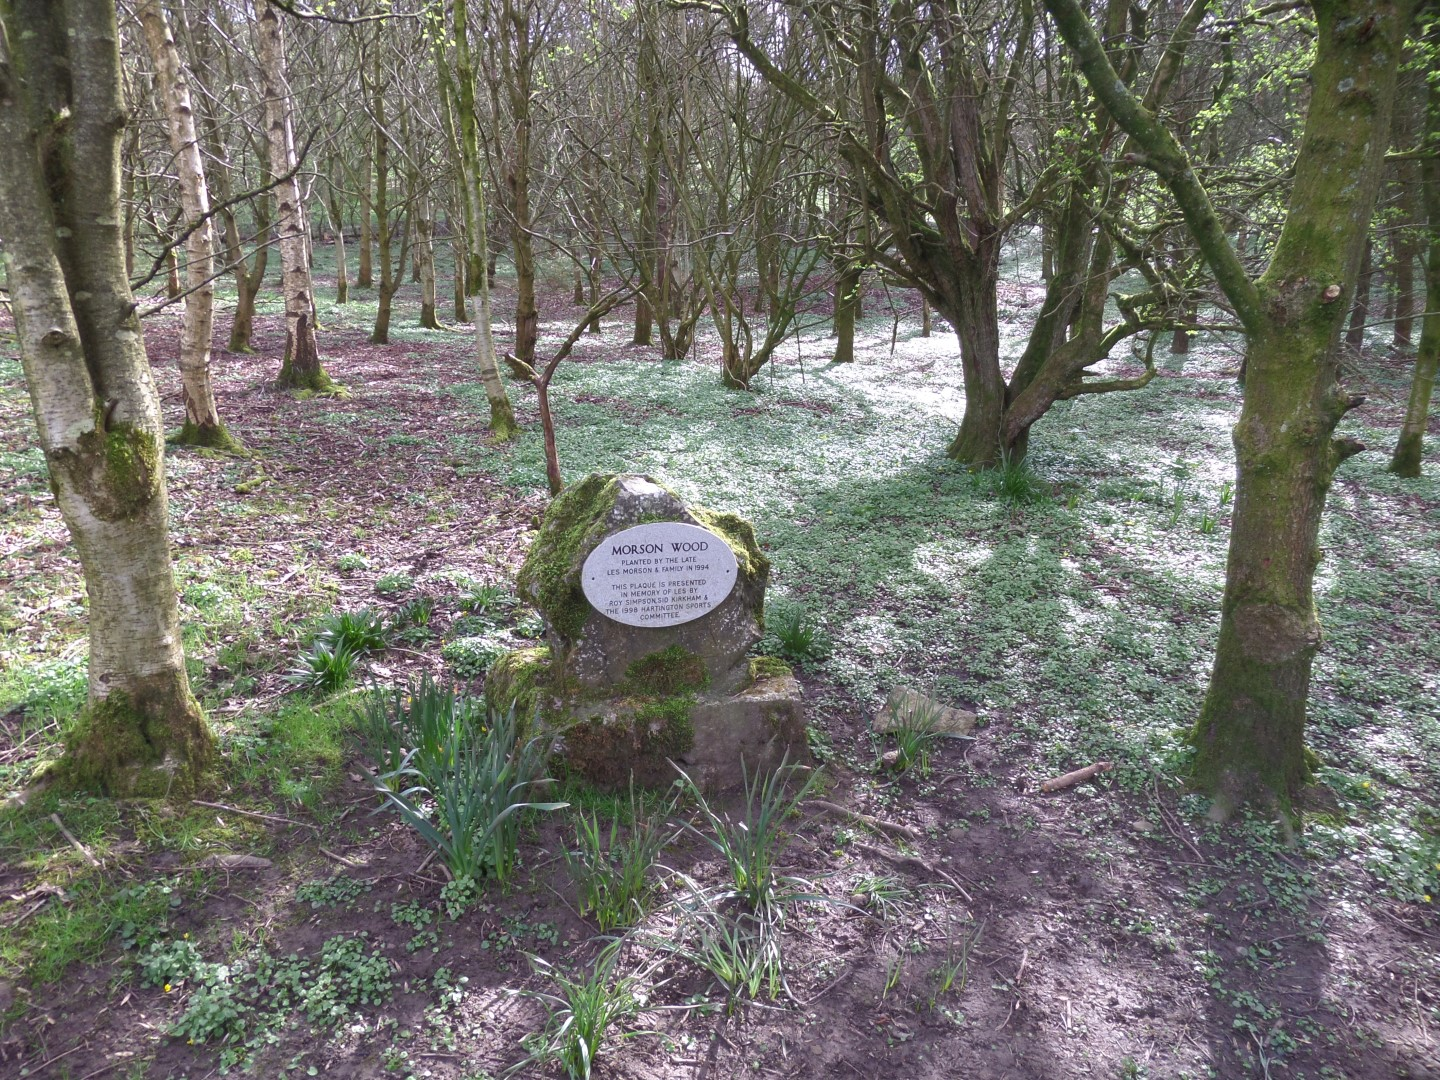 Morson Wood memorial marker